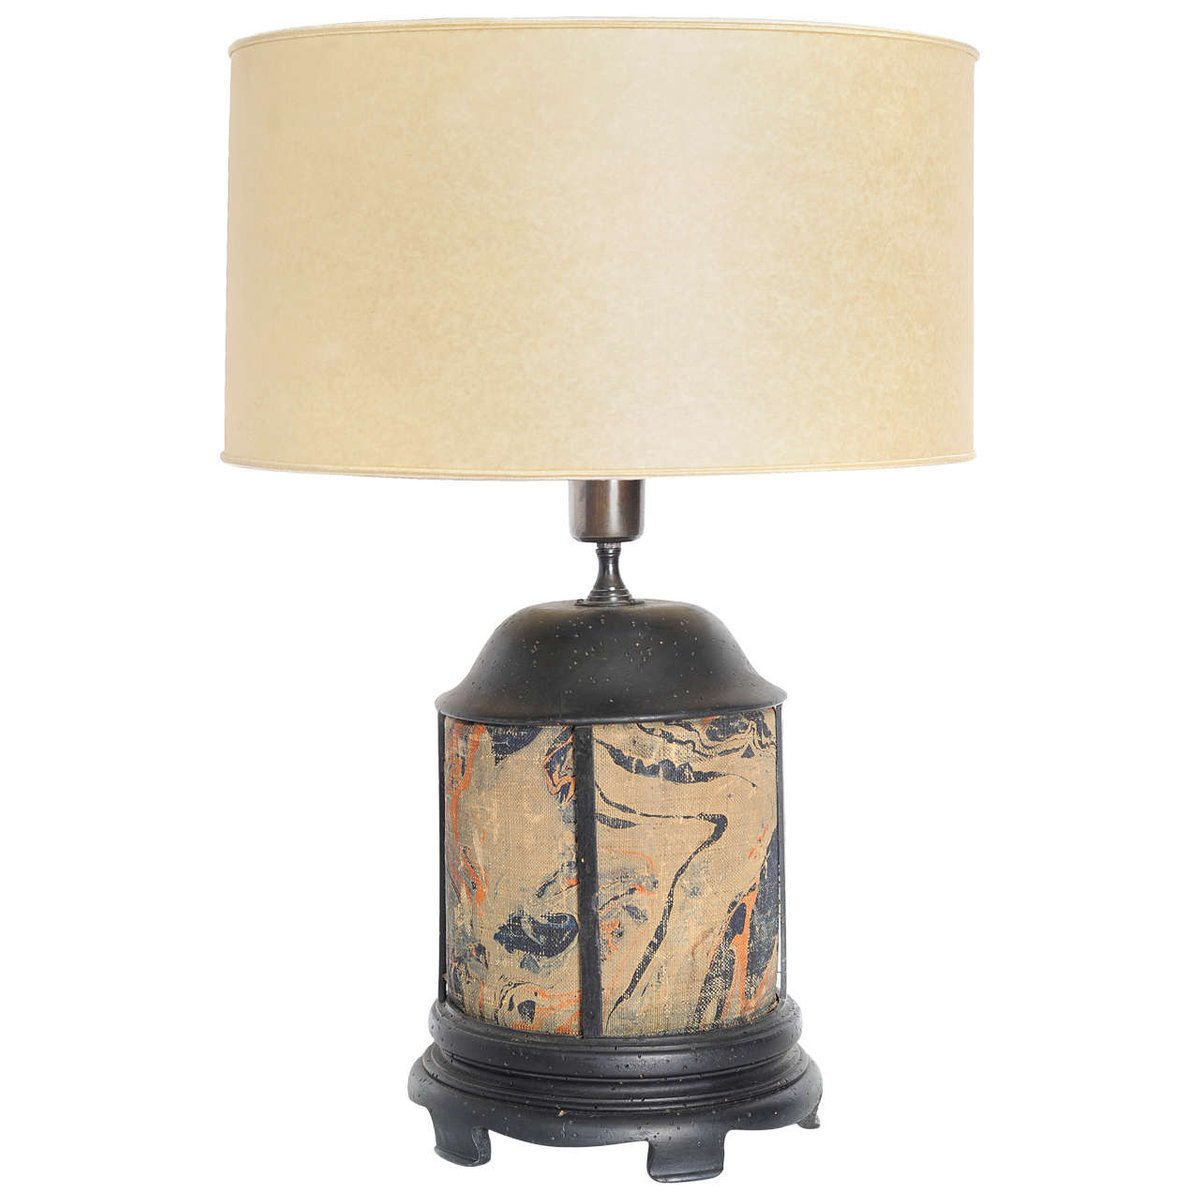 Antique table lamps online shop shop antique table lamps at pamono antique hand painted fabric wood table lamp geotapseo Choice Image